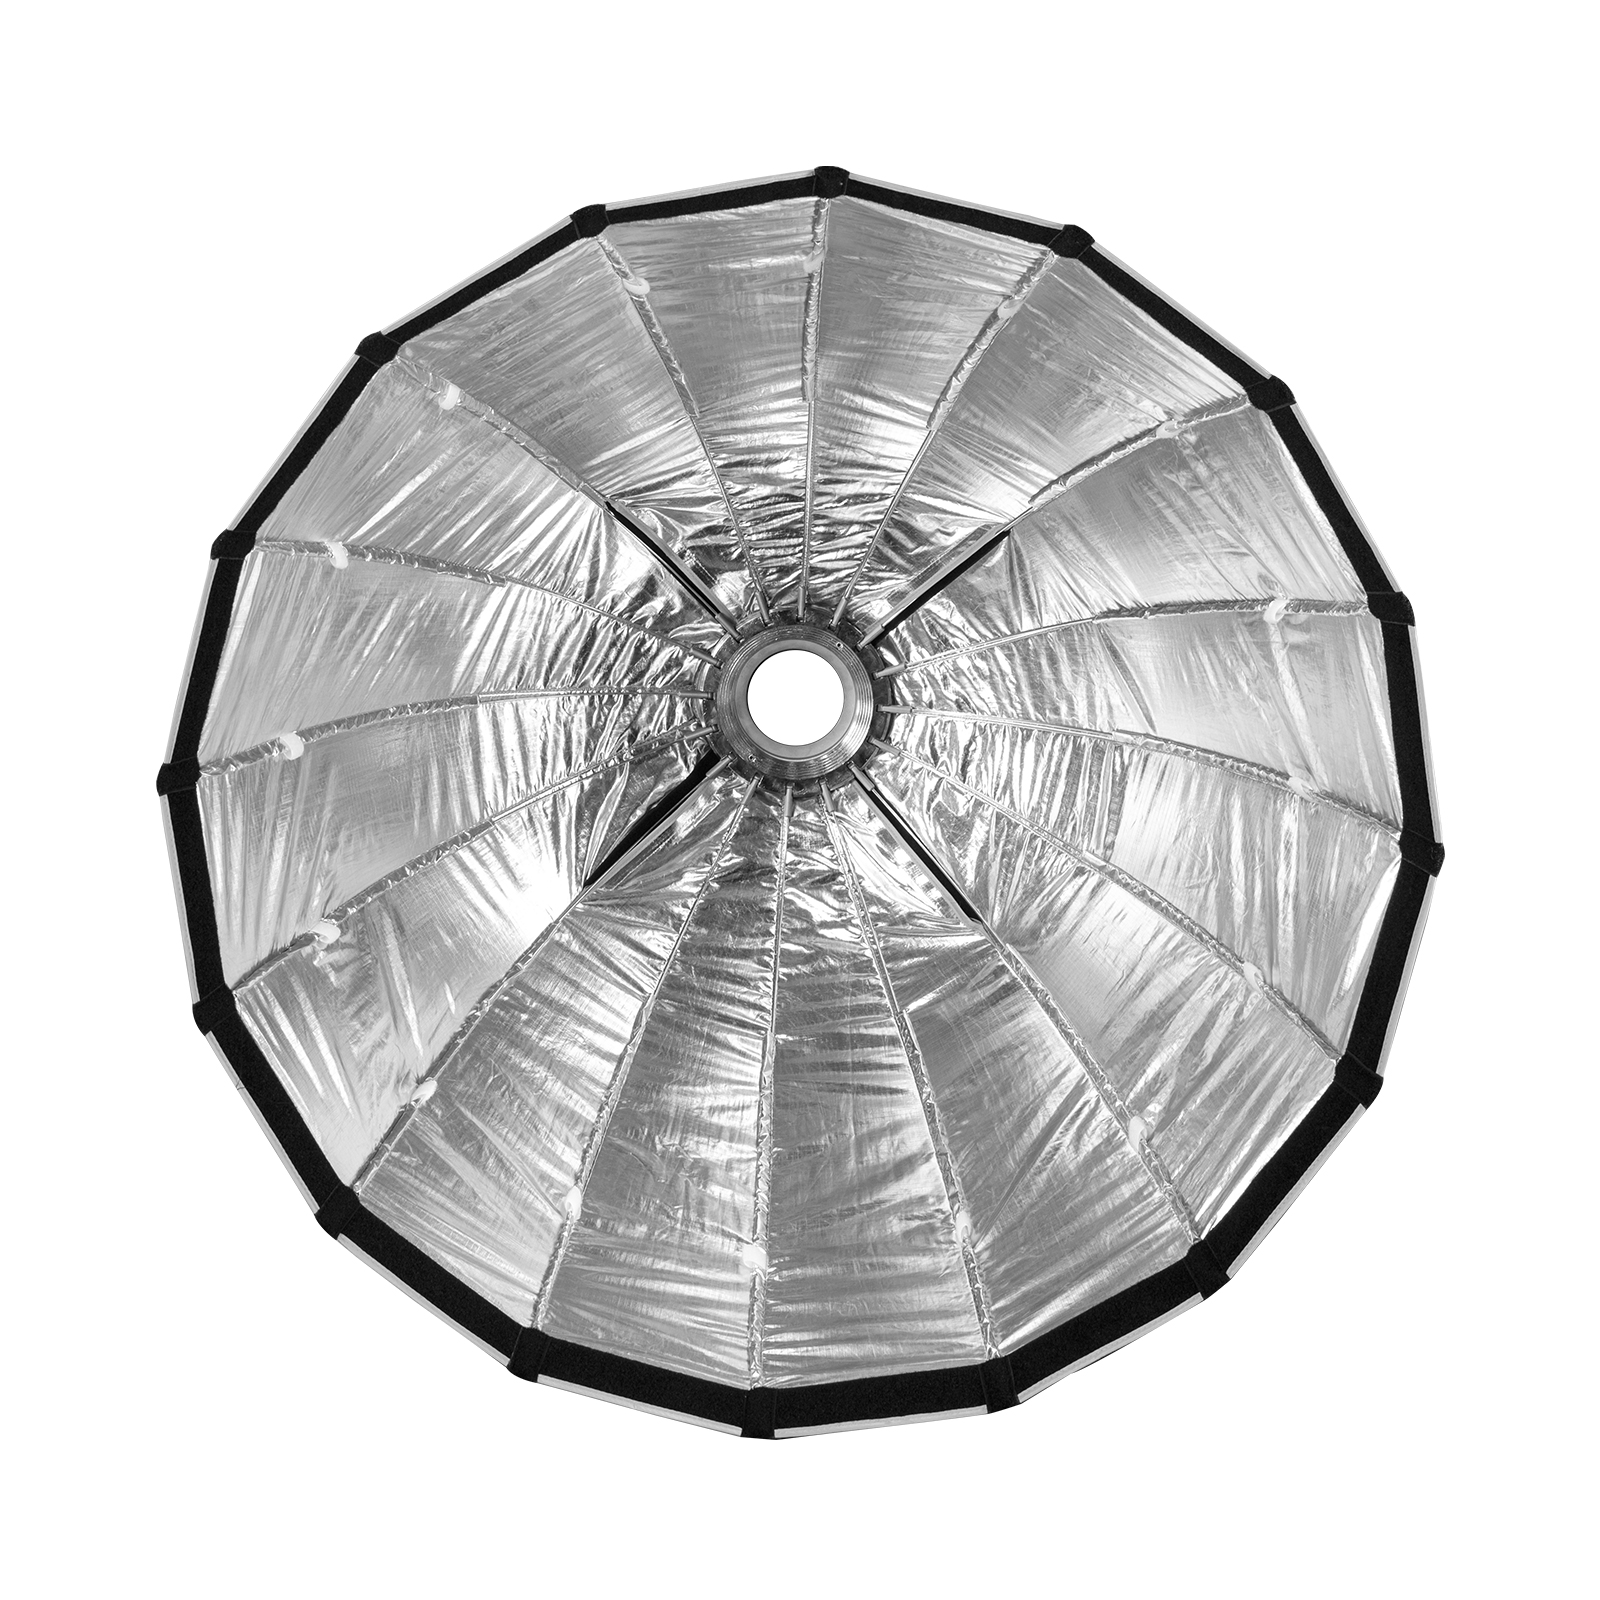 Pixel F120 LED Parabolic Softbox, soft light, delicate and even.